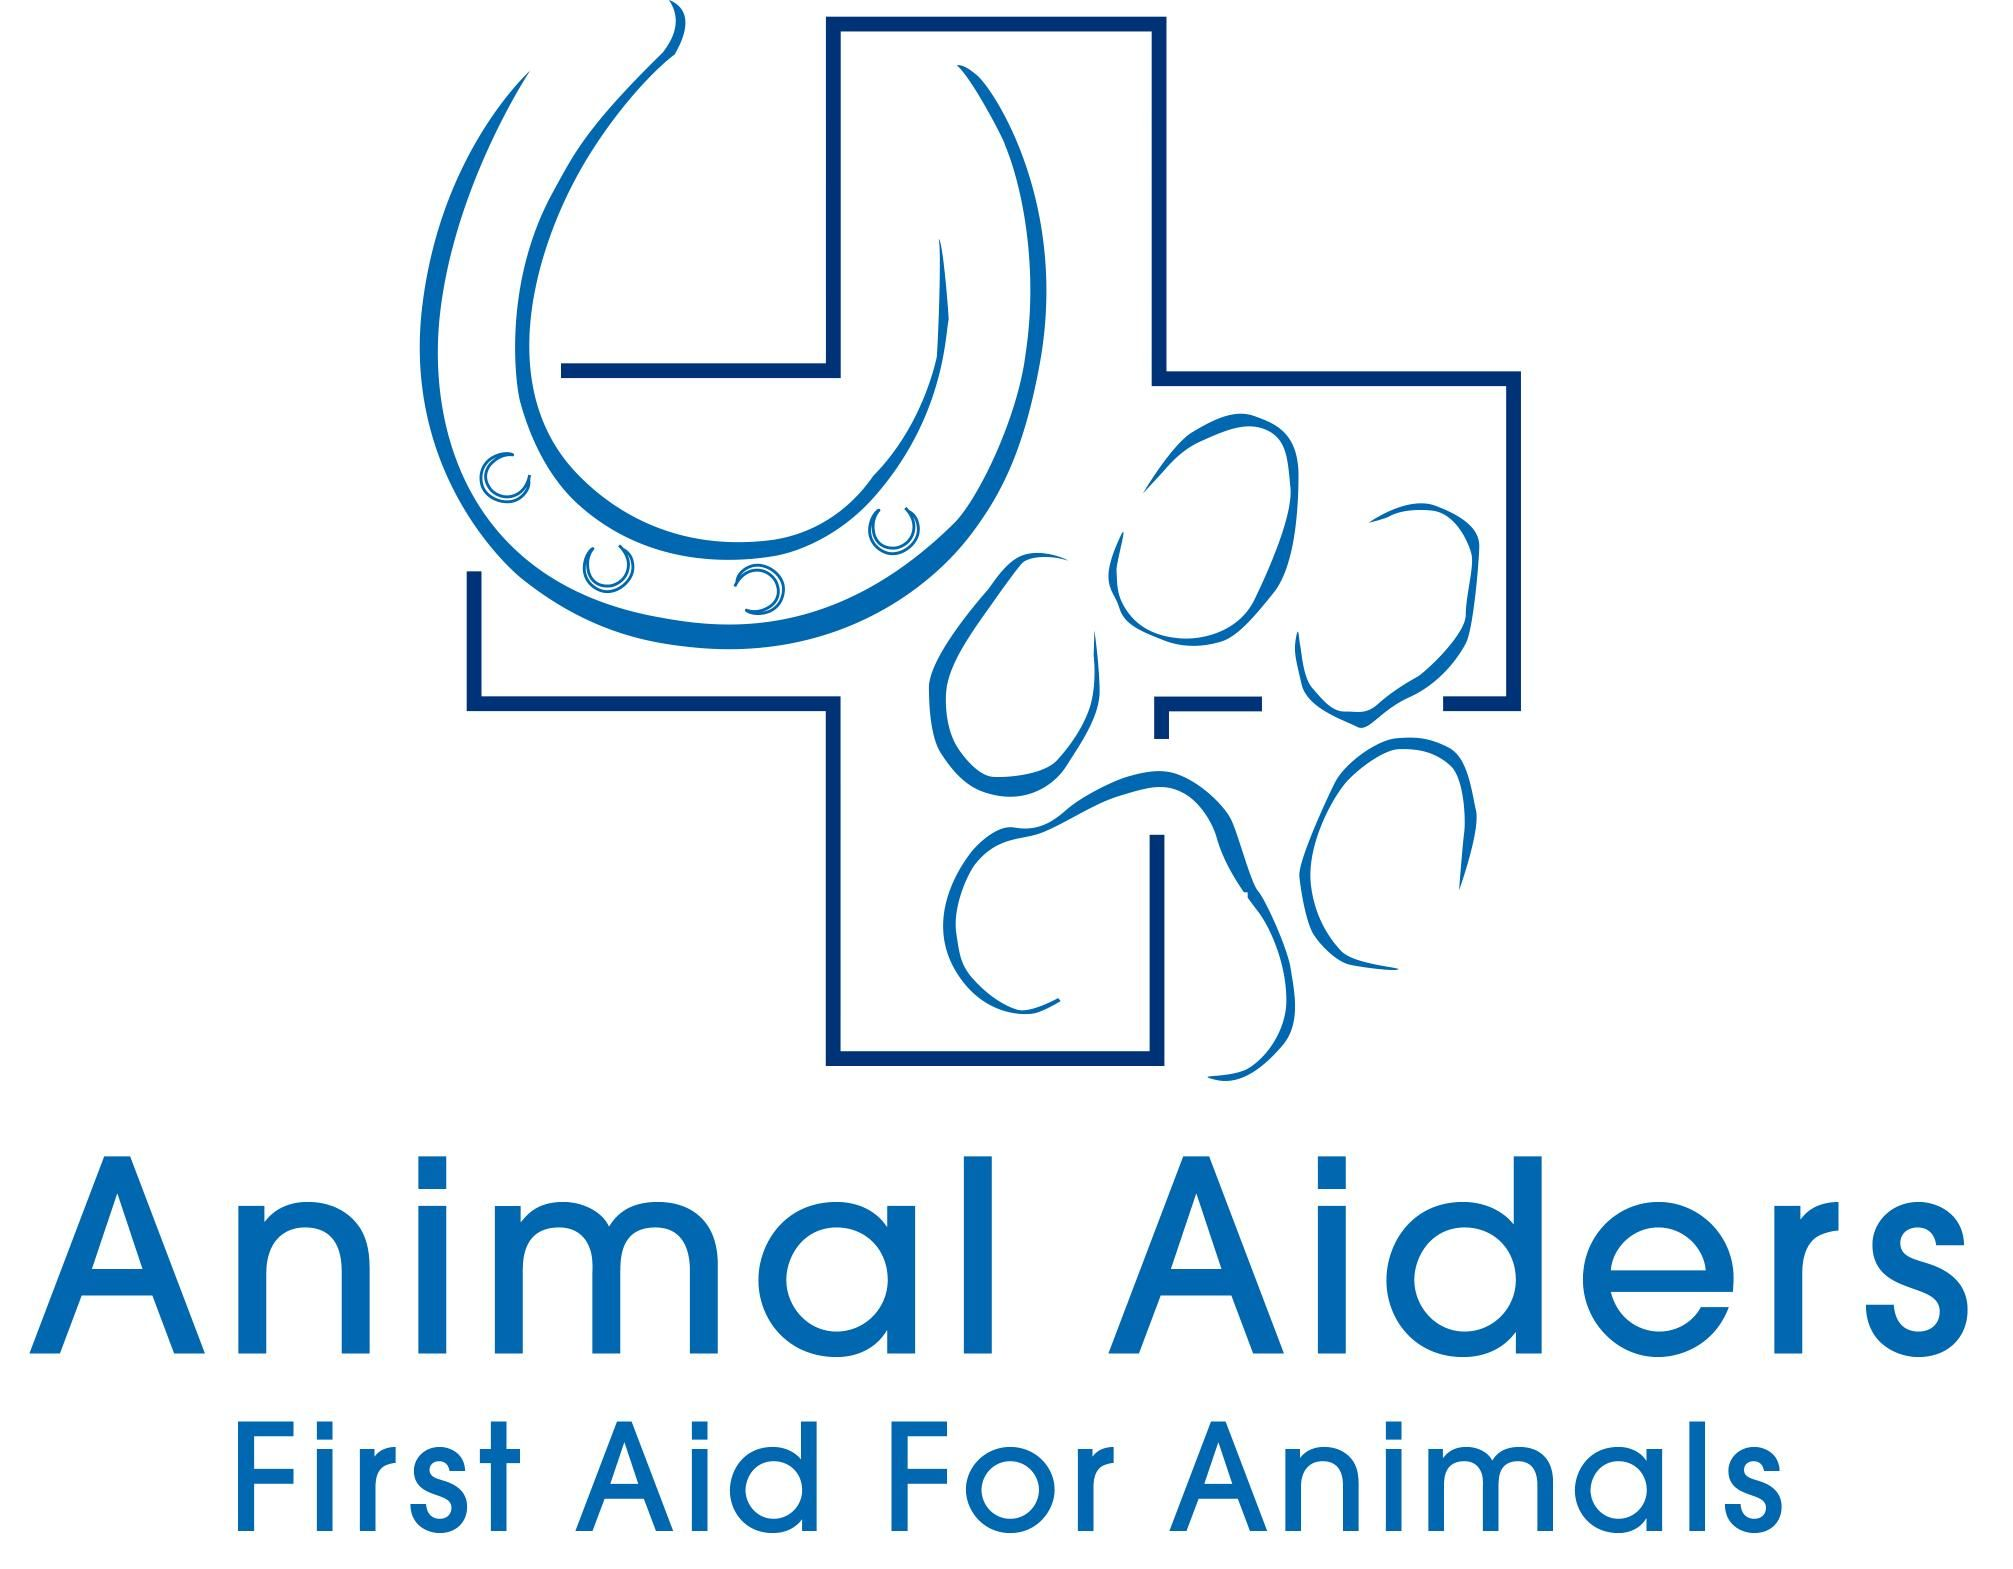 animal aiders logo, links to the homepage